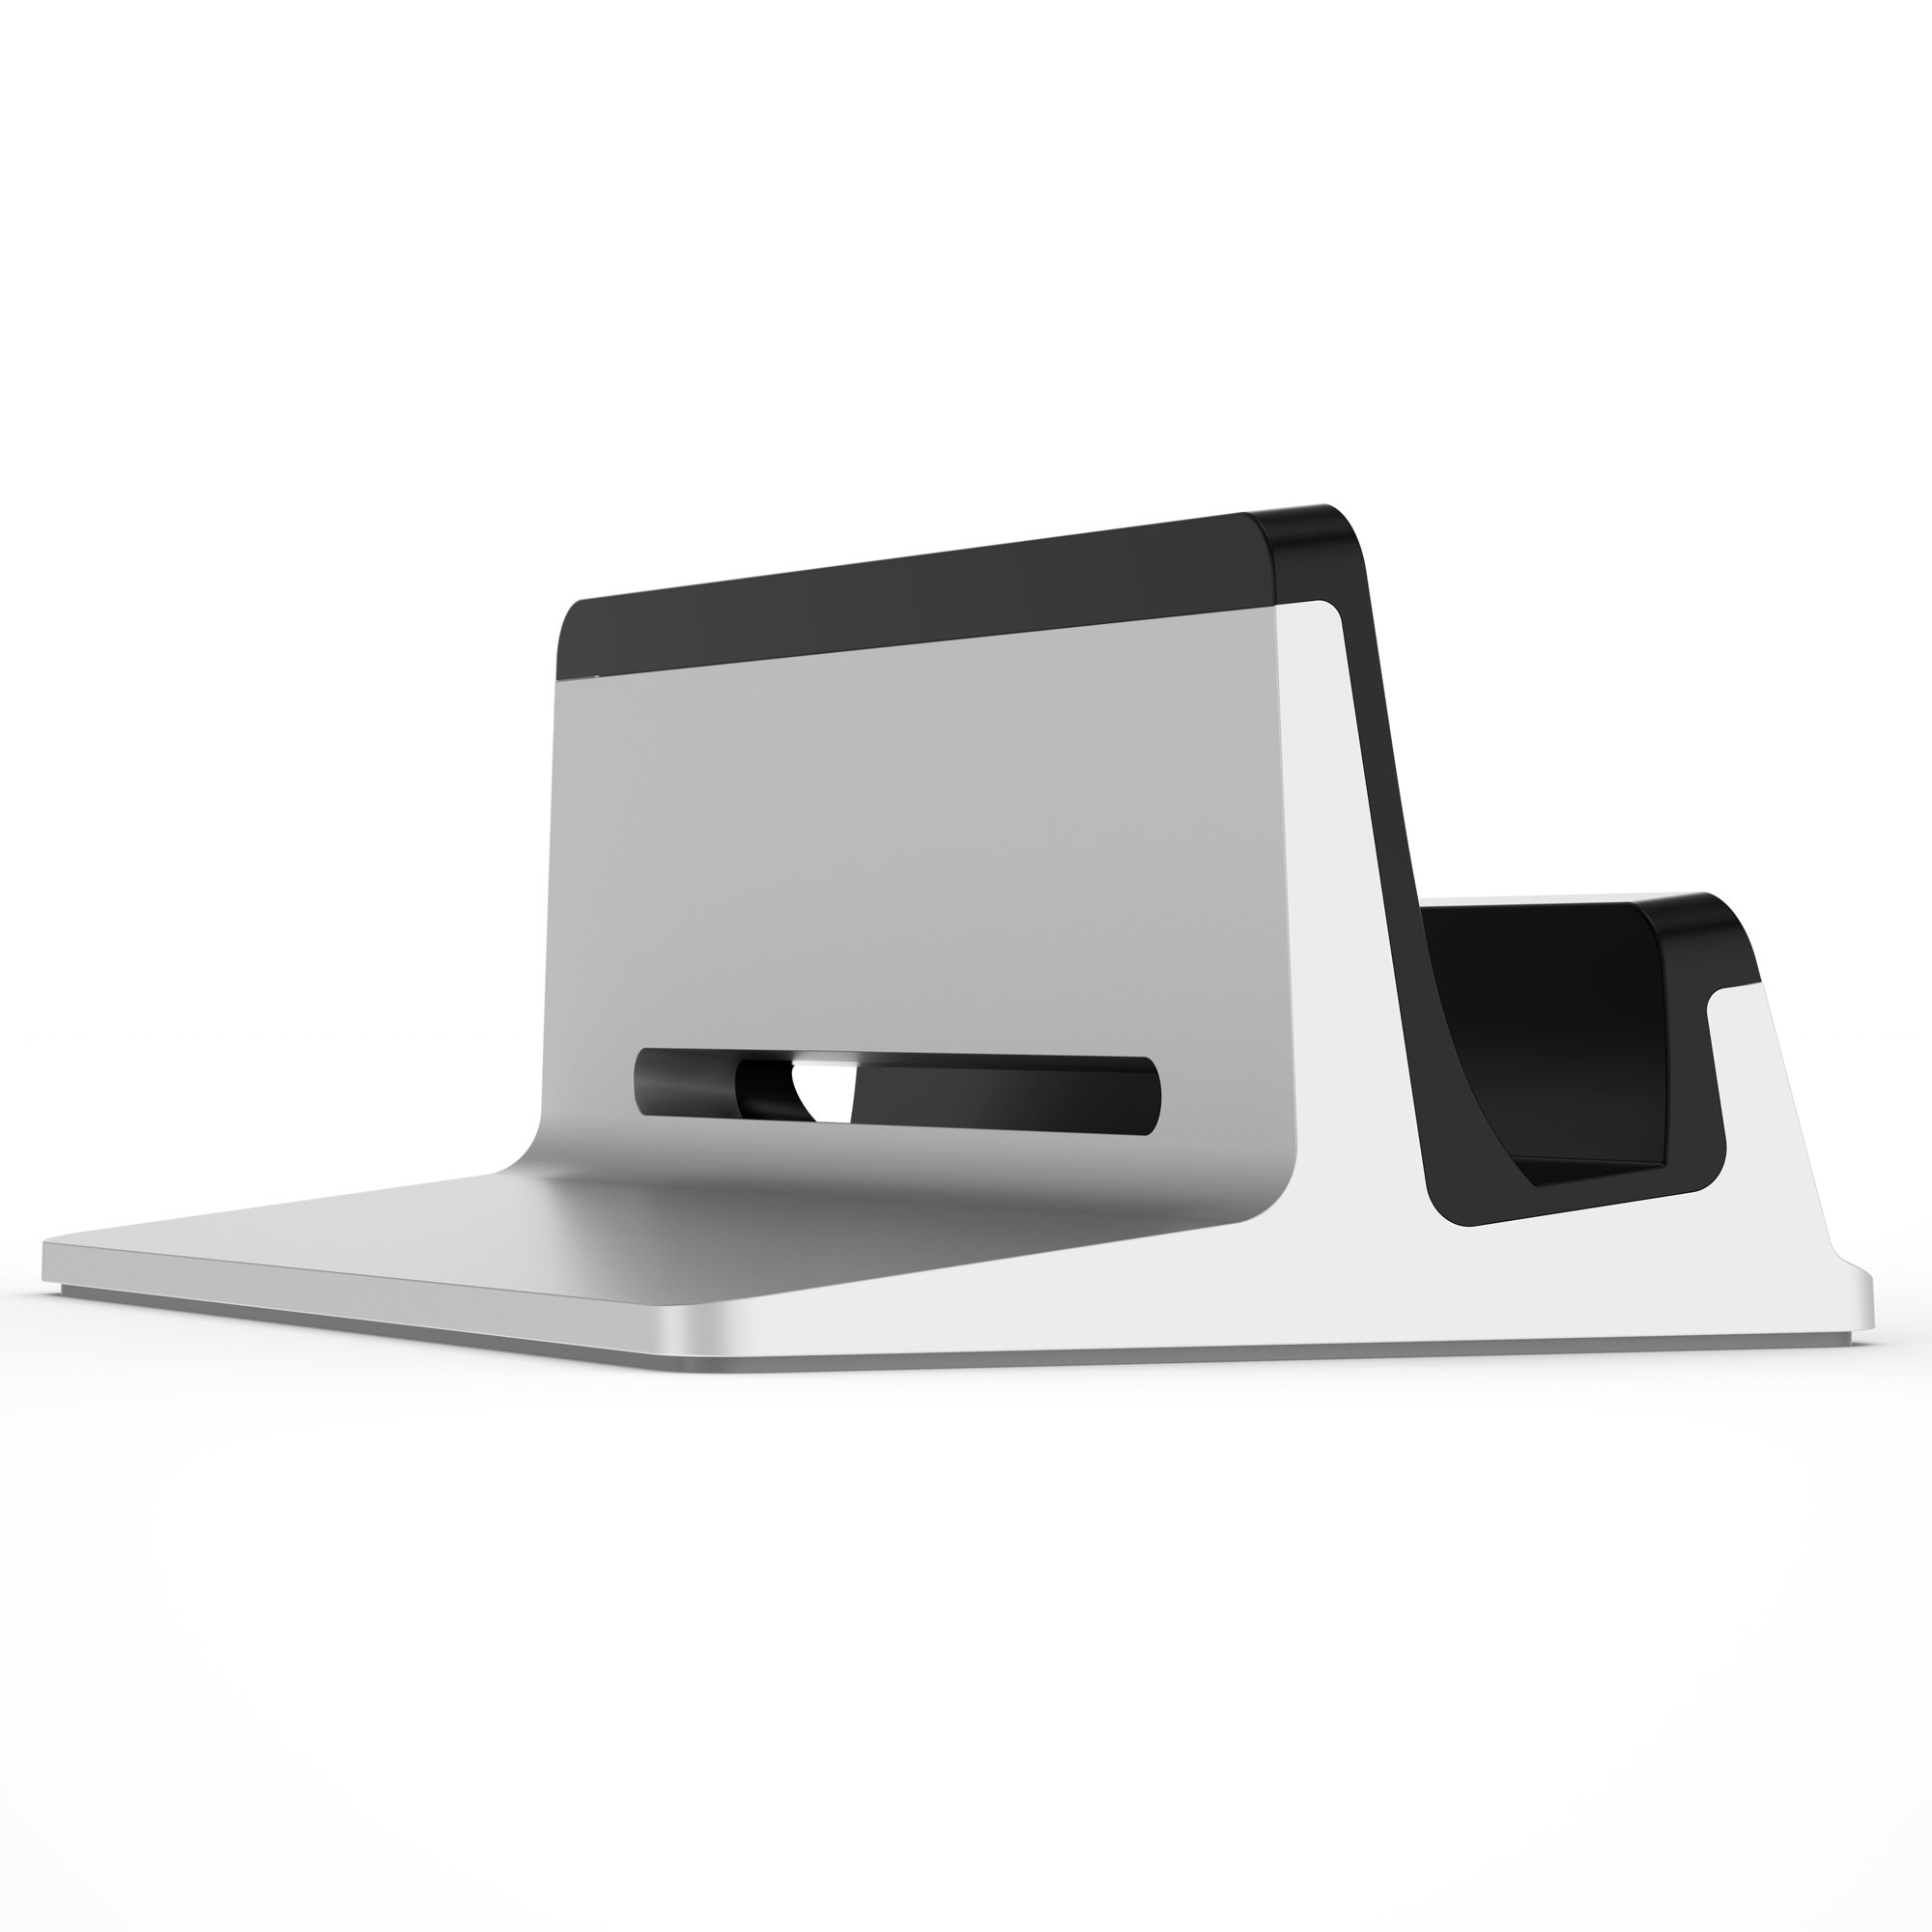 UPPERCASE KRADL Pro Small Profile Aluminum Vertical Stand for Retina MacBook Pro 13'' or 15'' (2012 to 2015 Releases), Silver/Black by UPPERCASE (Image #3)